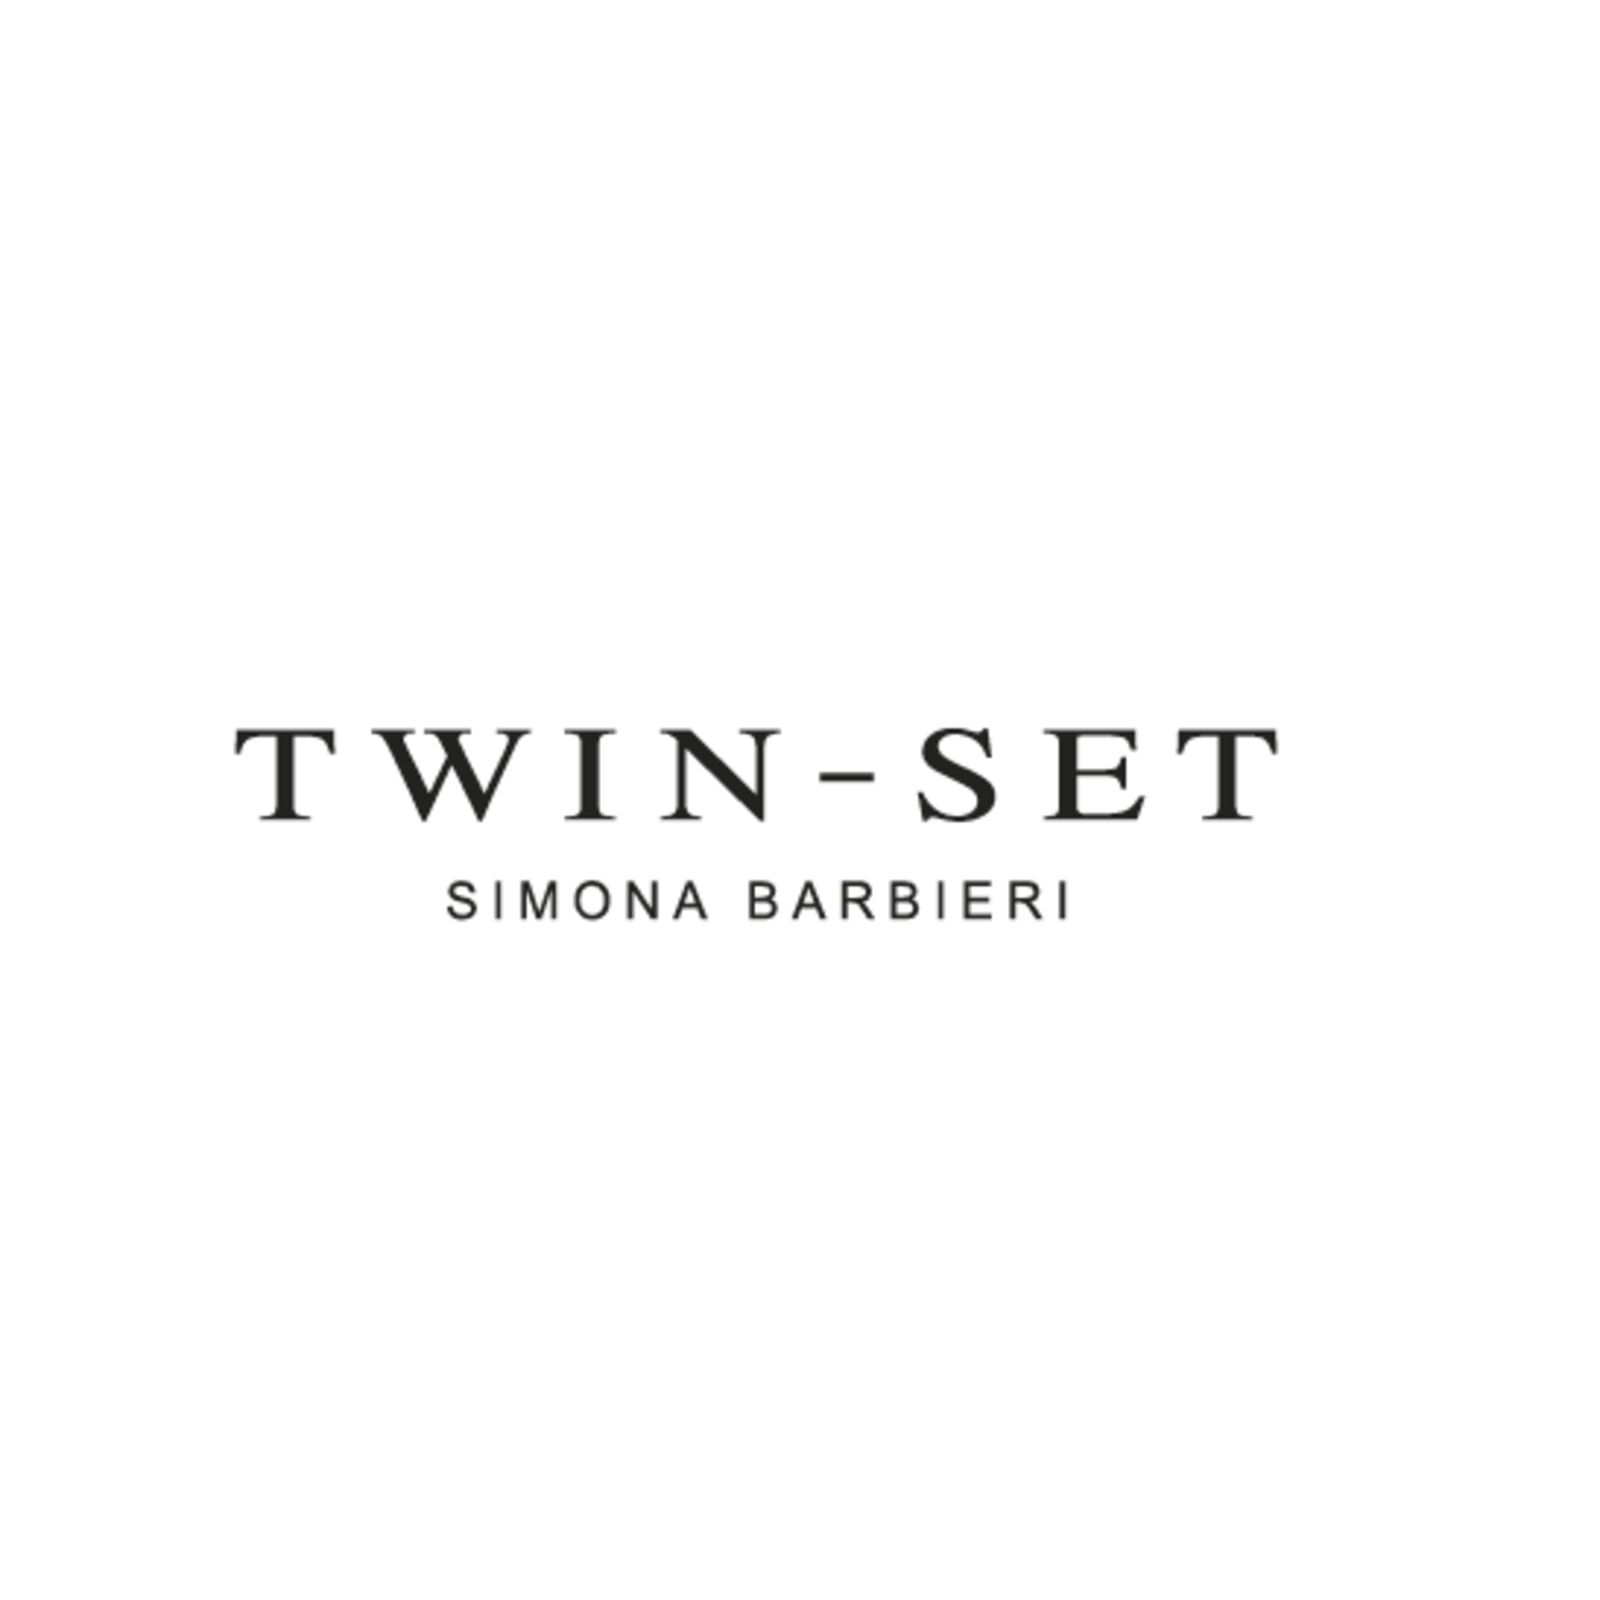 TWIN-SET SIMONA BARBIERI (Изображение 1)